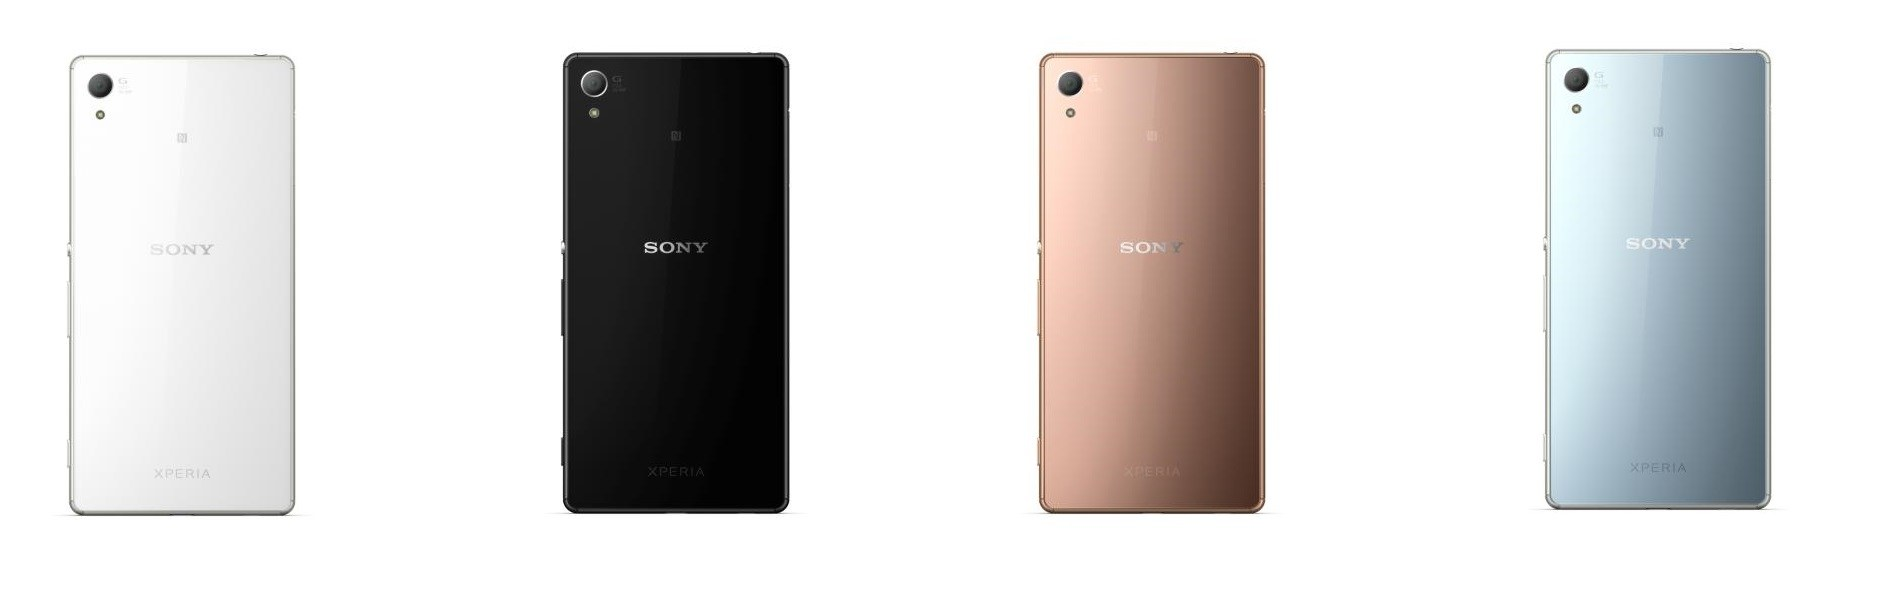 Sony Xperia Z3+, la version occidentale du Xperia Z4 ?